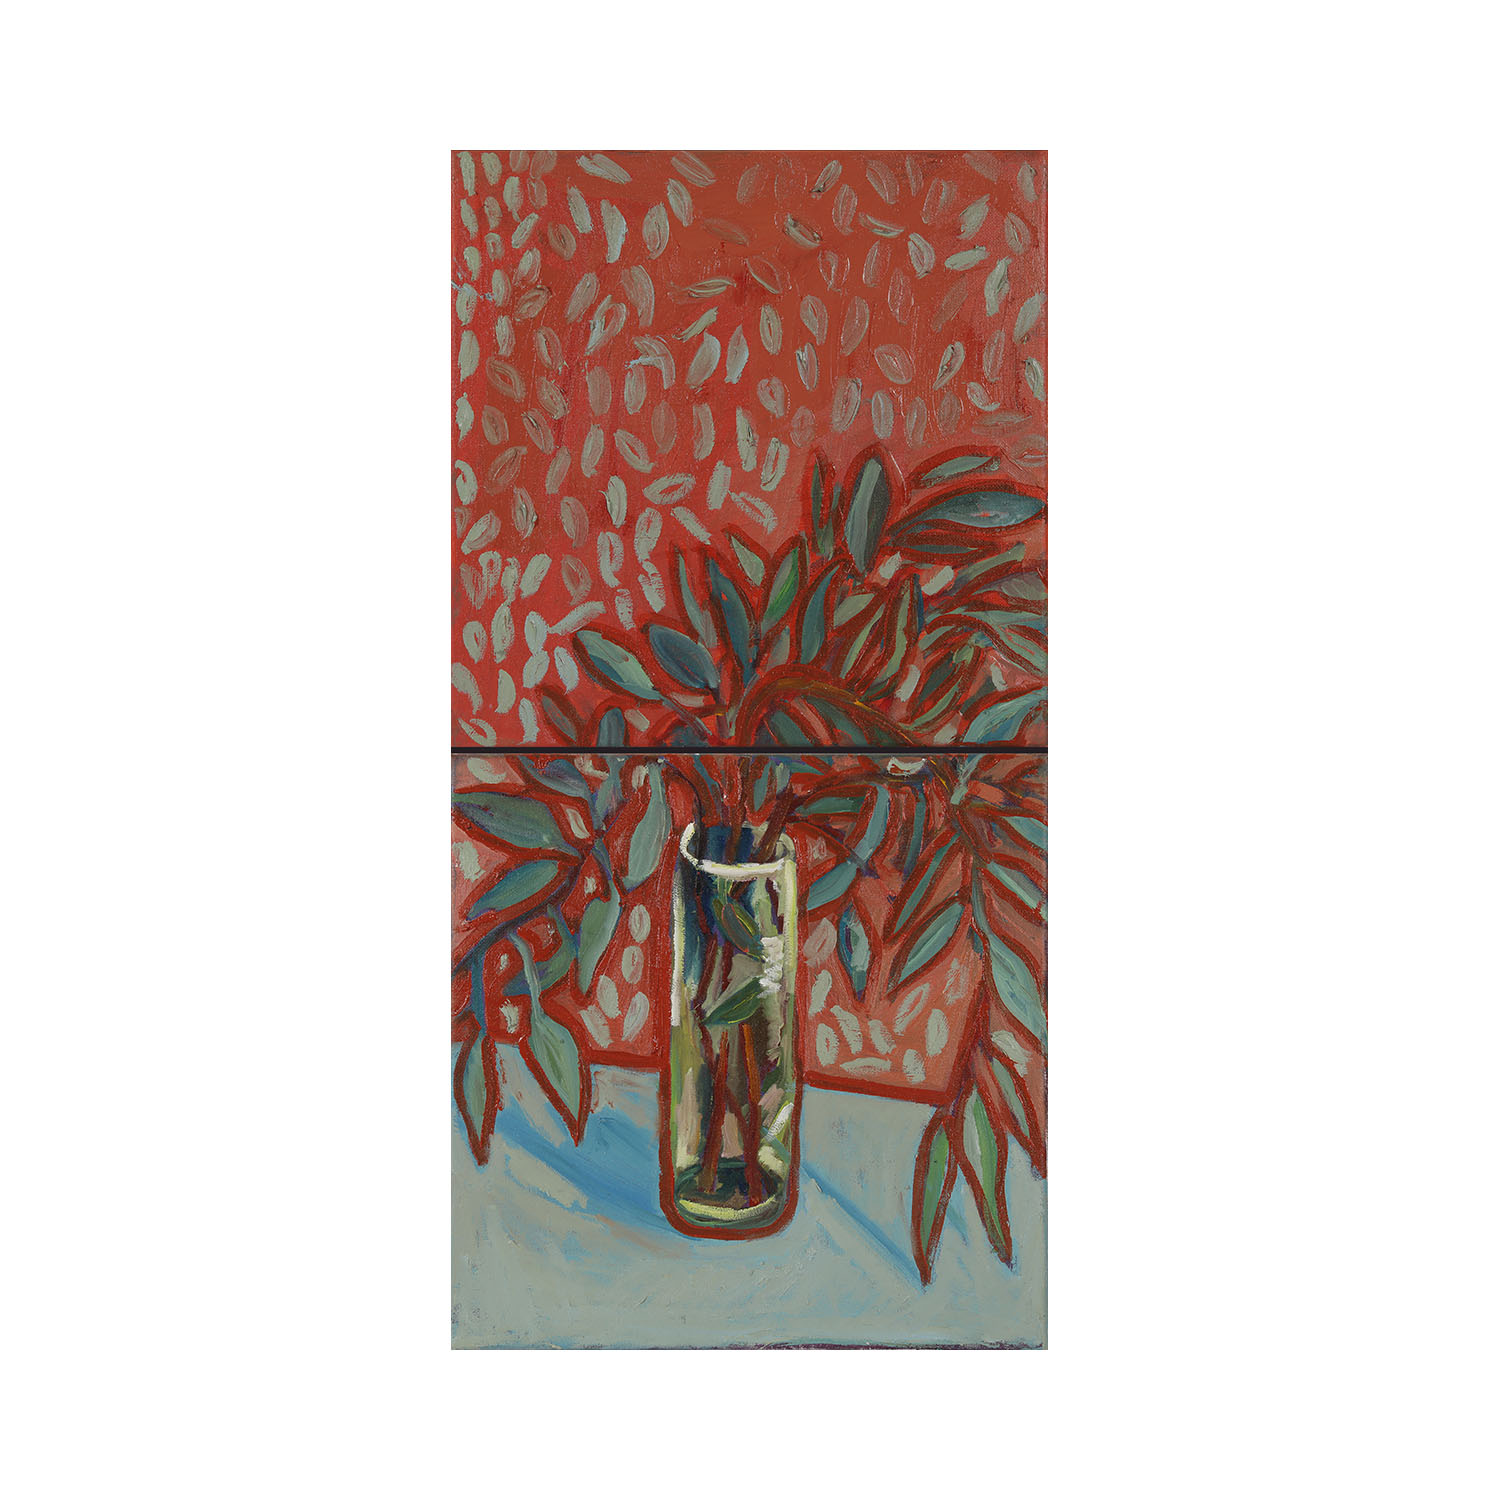 Still Life #3 (red)   (2018) (dyptich)  Oil on canvas  60cm x 30cm  SOLD